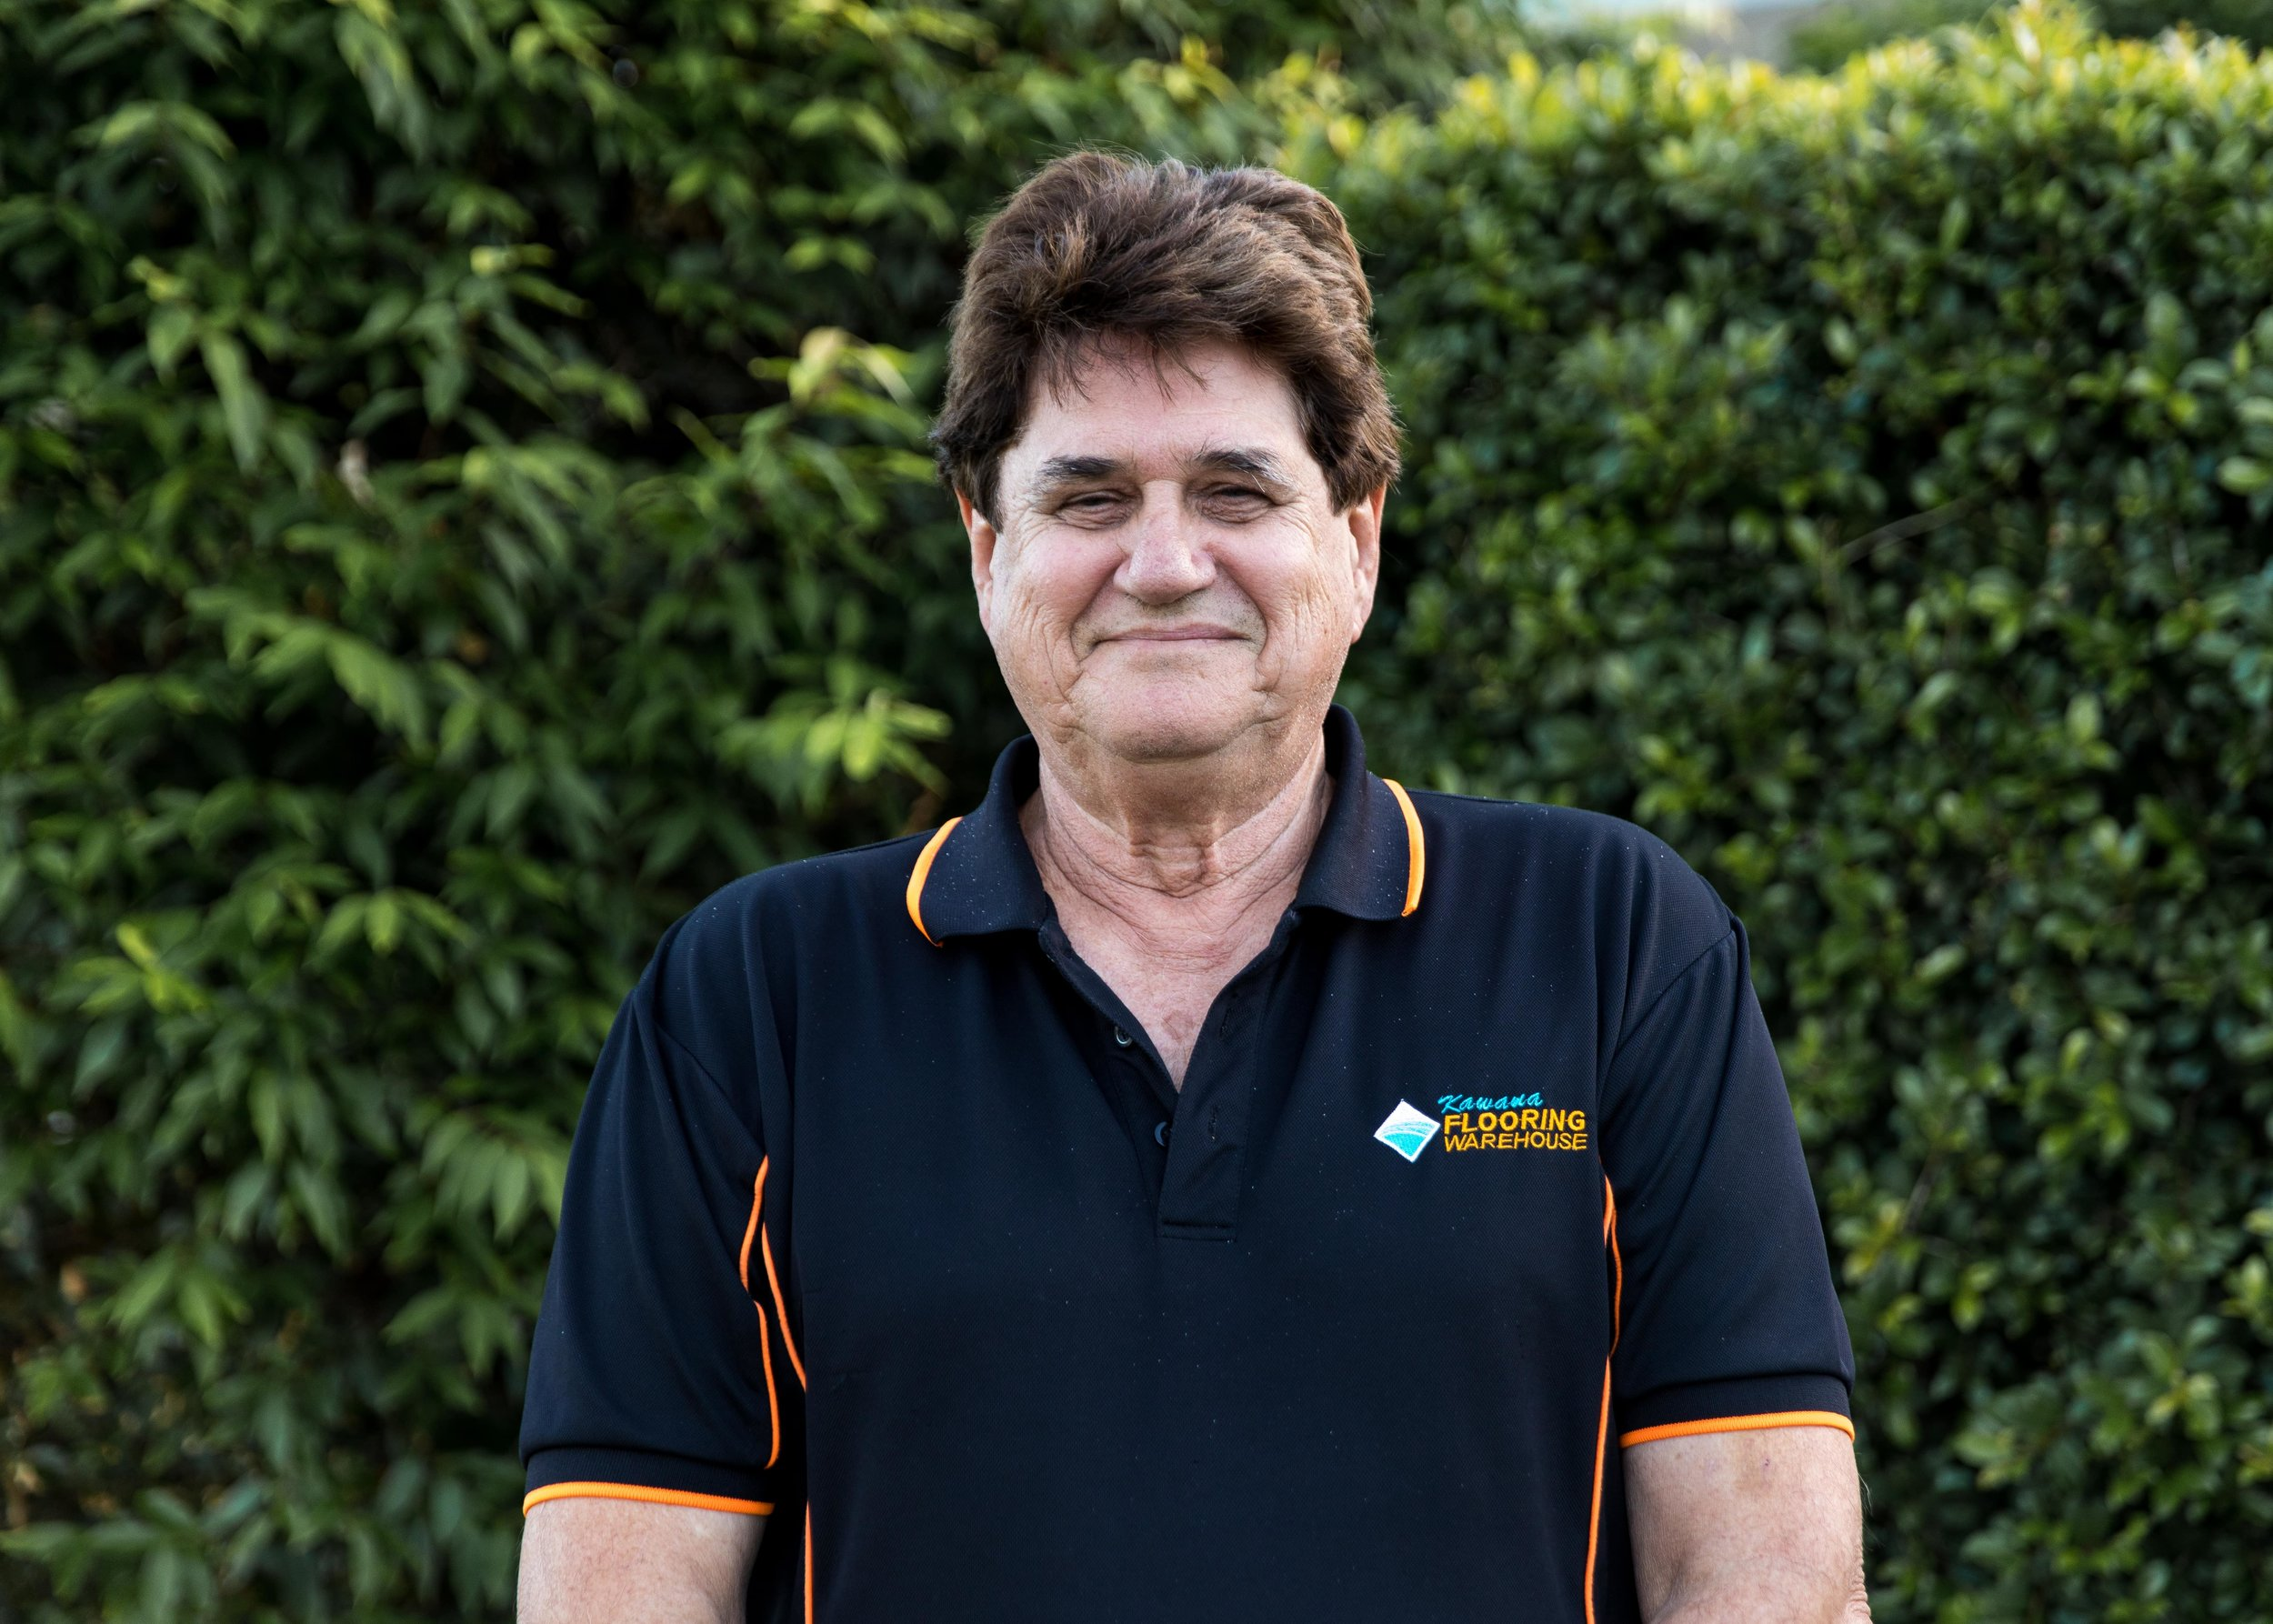 Garry Brook, Owner - What do you like about working at Kawana Flooring?The camaraderie between staff and the team culture. Nothing is too much effort for the customer and the staff are genuinely interested in a successful outcome for the customer.What are the values that drive you?Honesty, integrity and loyalty.I try hard to achieve these goals as well as trying to be considerate to others.What is something that no one at work knows about you?I played Tennis and Table Tennis at a State Level during my High School years.